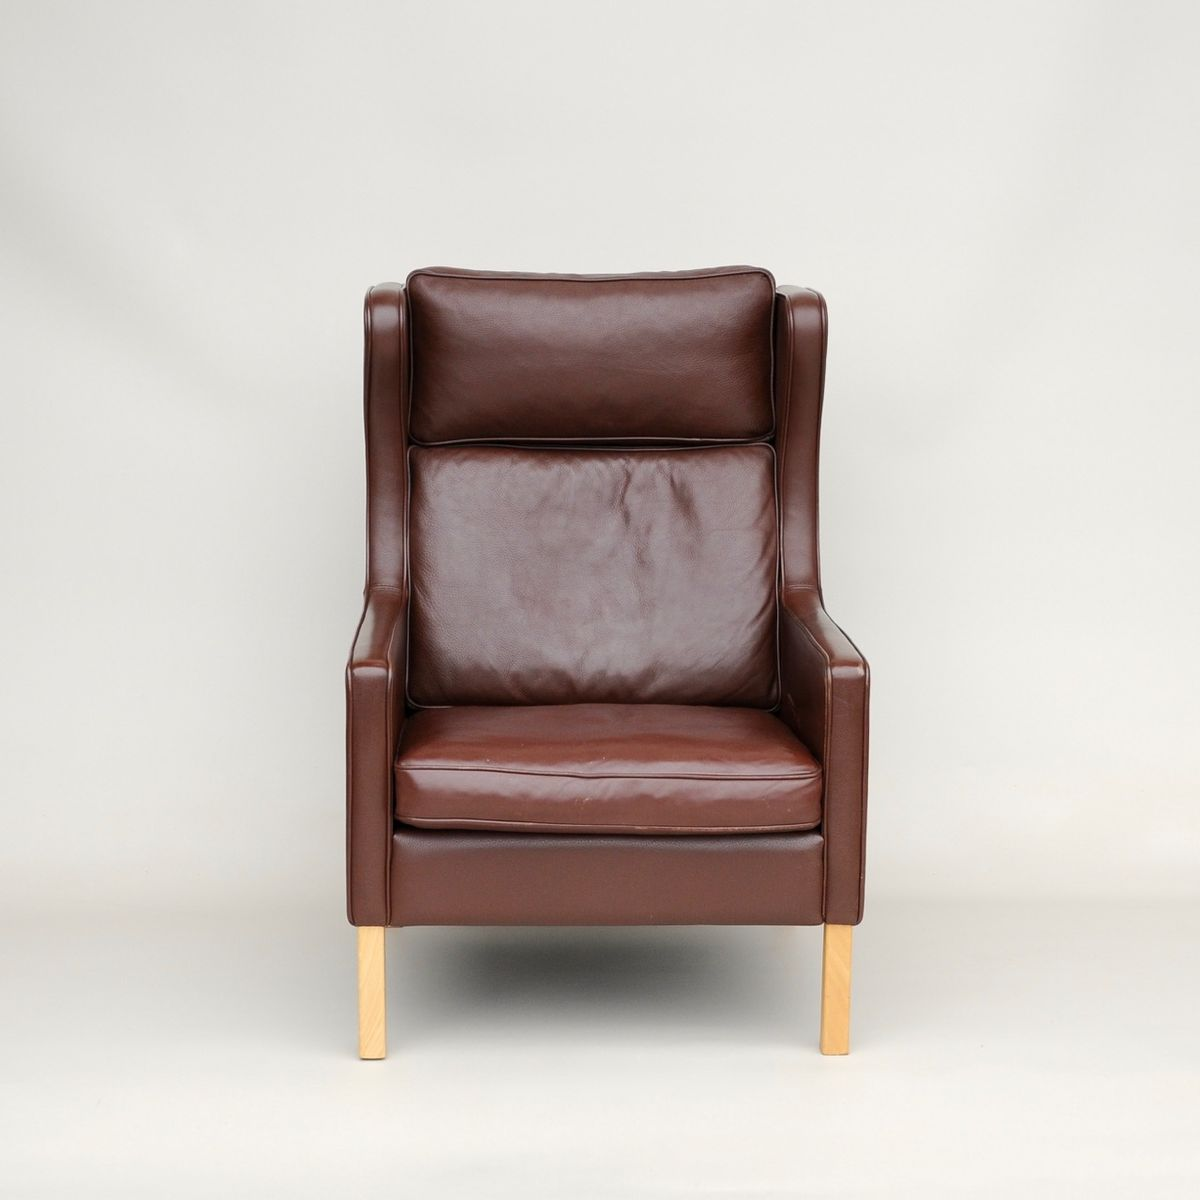 vintage danish leather wing armchair from stouby for sale